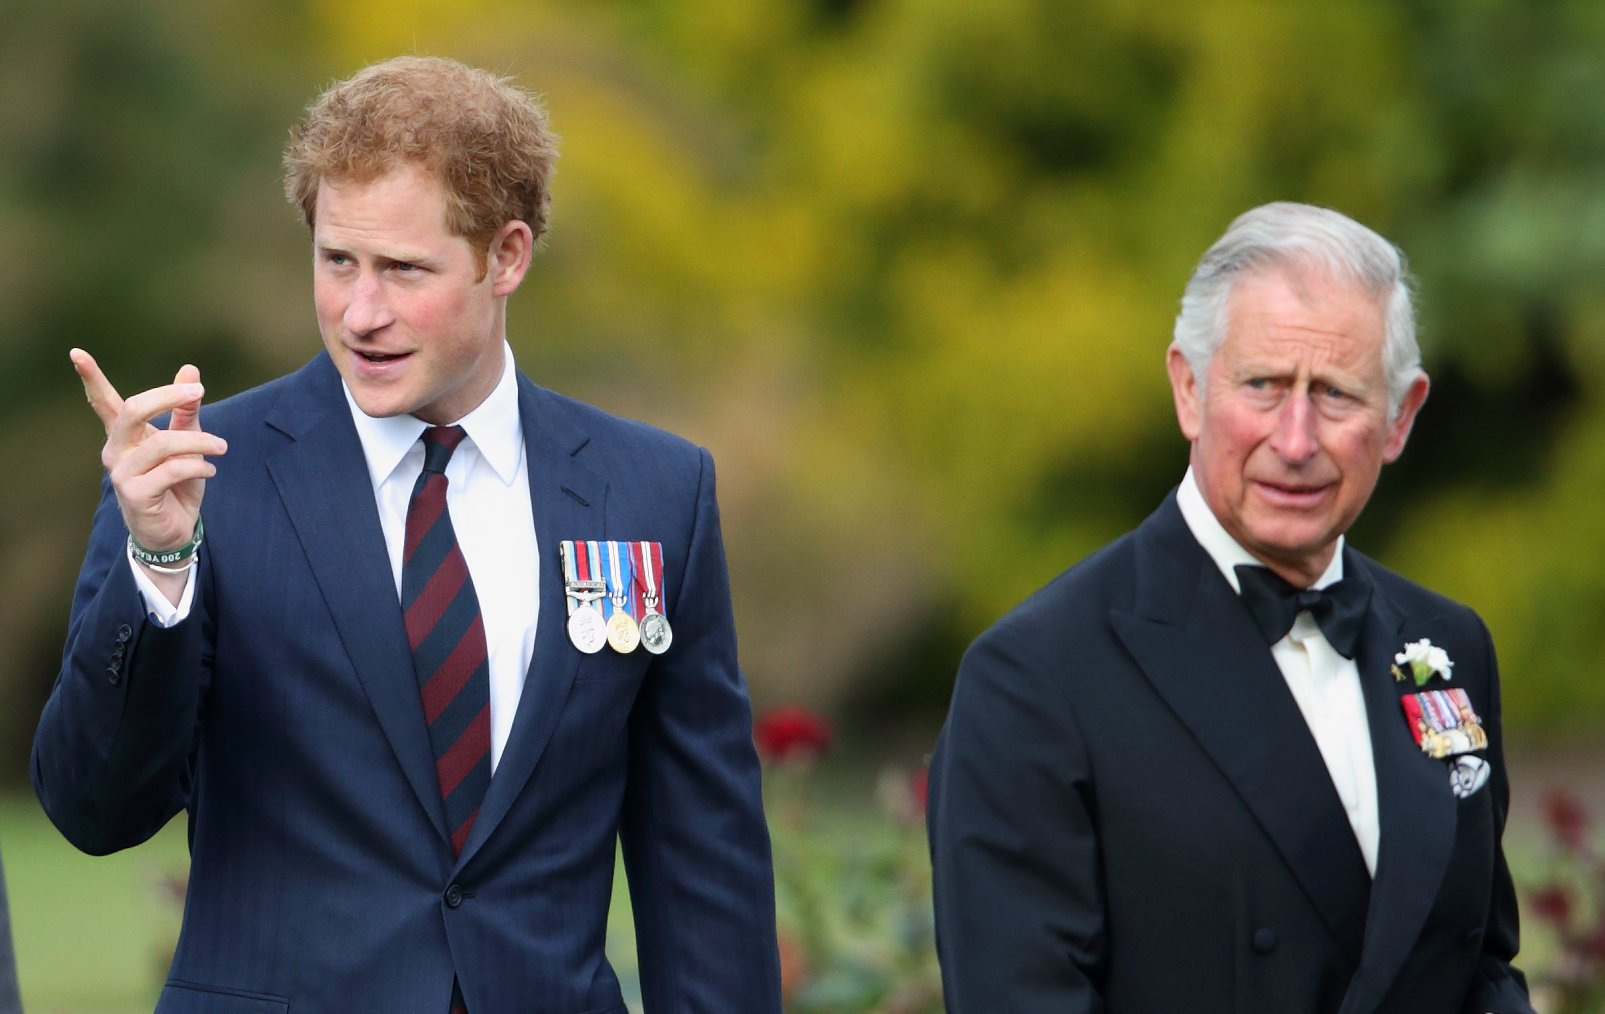 Image Credits: Getty Images / Max Mumby / Indigo   Prince Harry and Prince Charles, Prince of Wales attend the Gurkha 200 Pageant at the Royal Hospital Chelsea on June 9, 2015 in London, England.